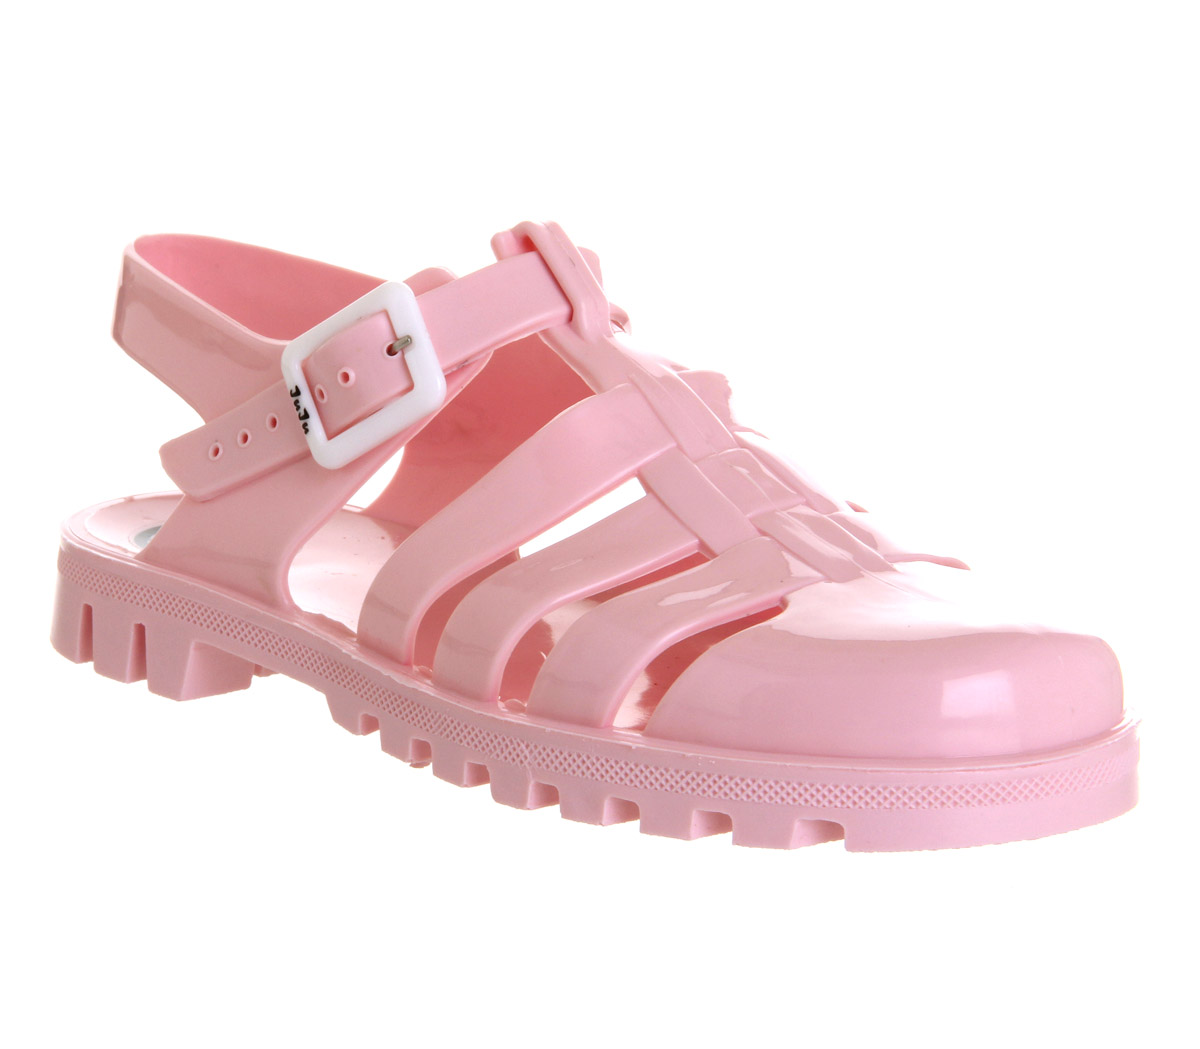 Womens JuJu Maxi Low Jelly Shoes PALE PINK Sandals